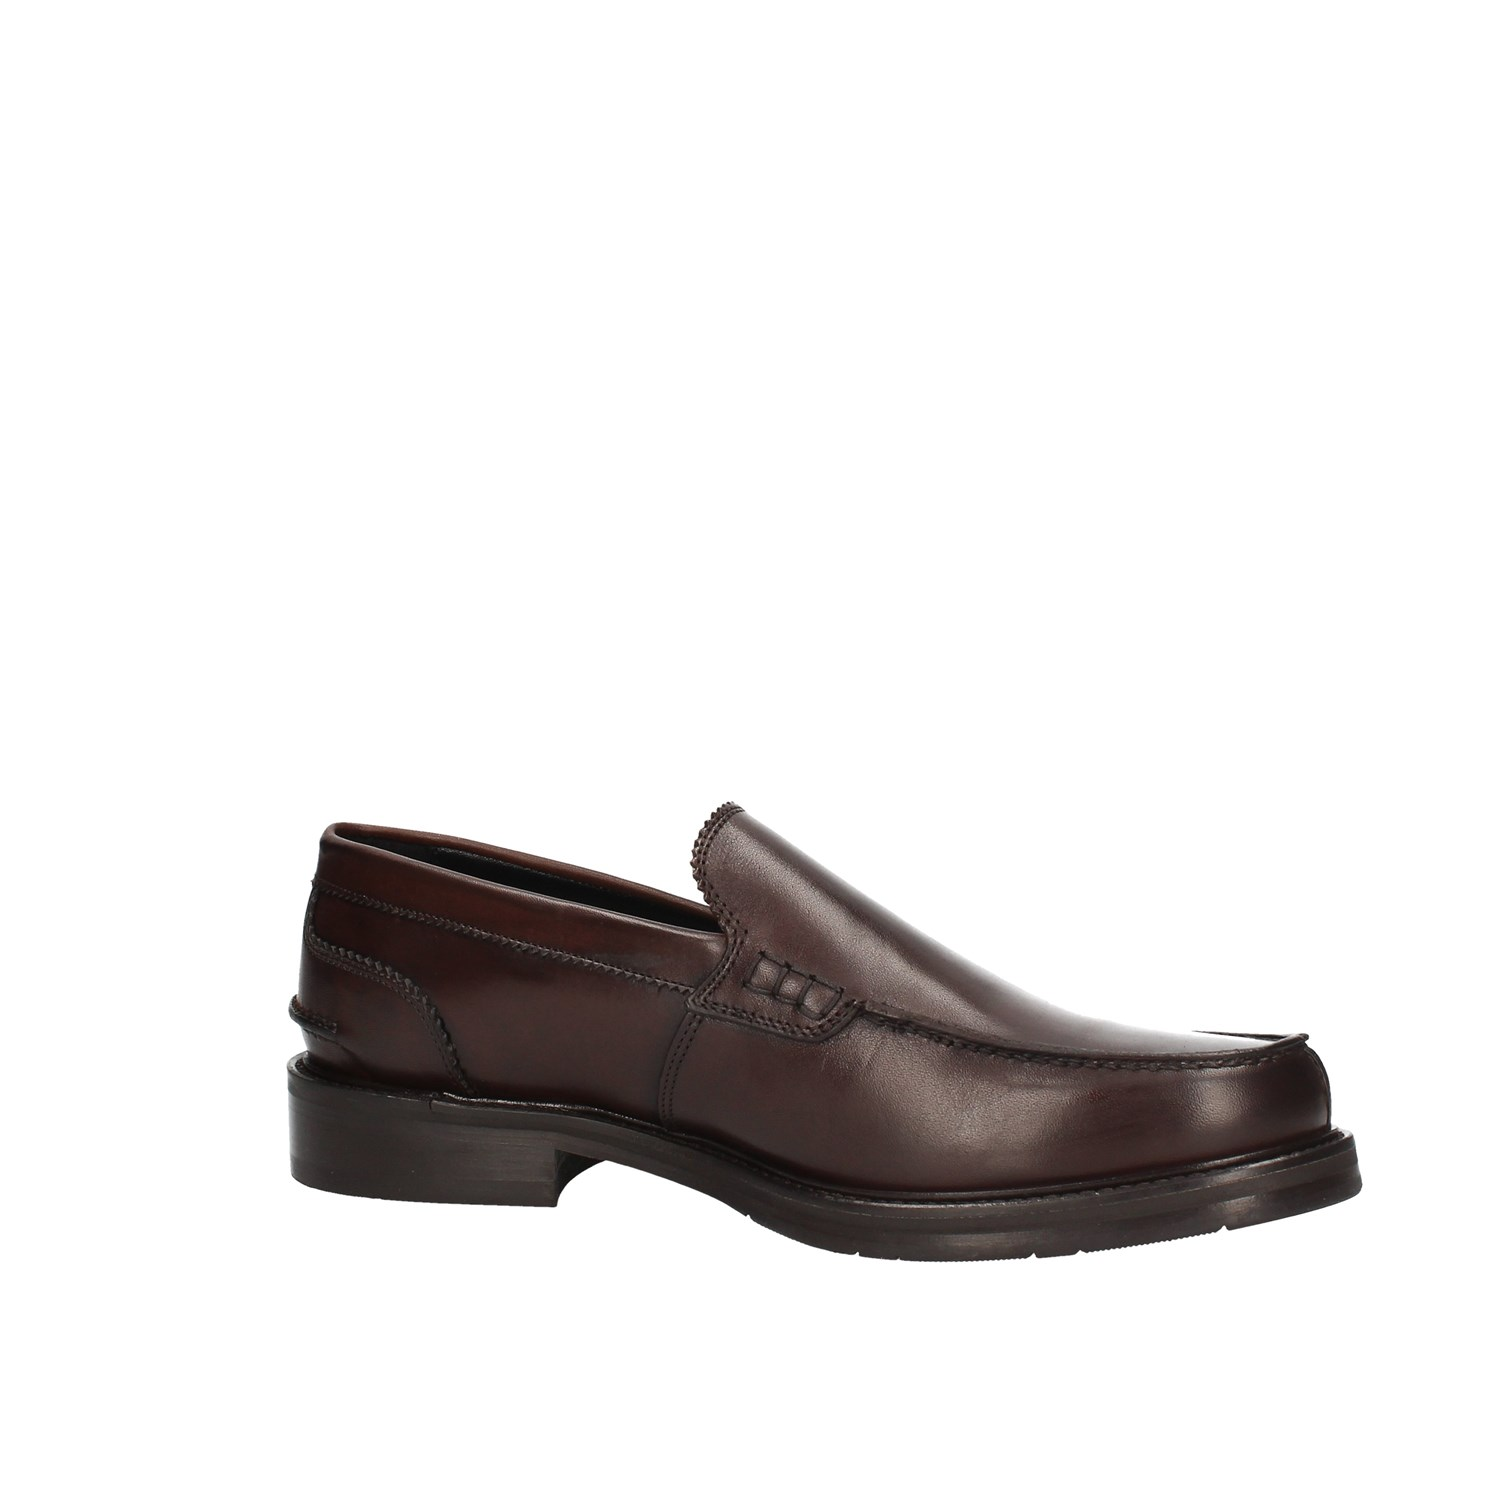 L'homme National 300 T.Moro Shoes Man